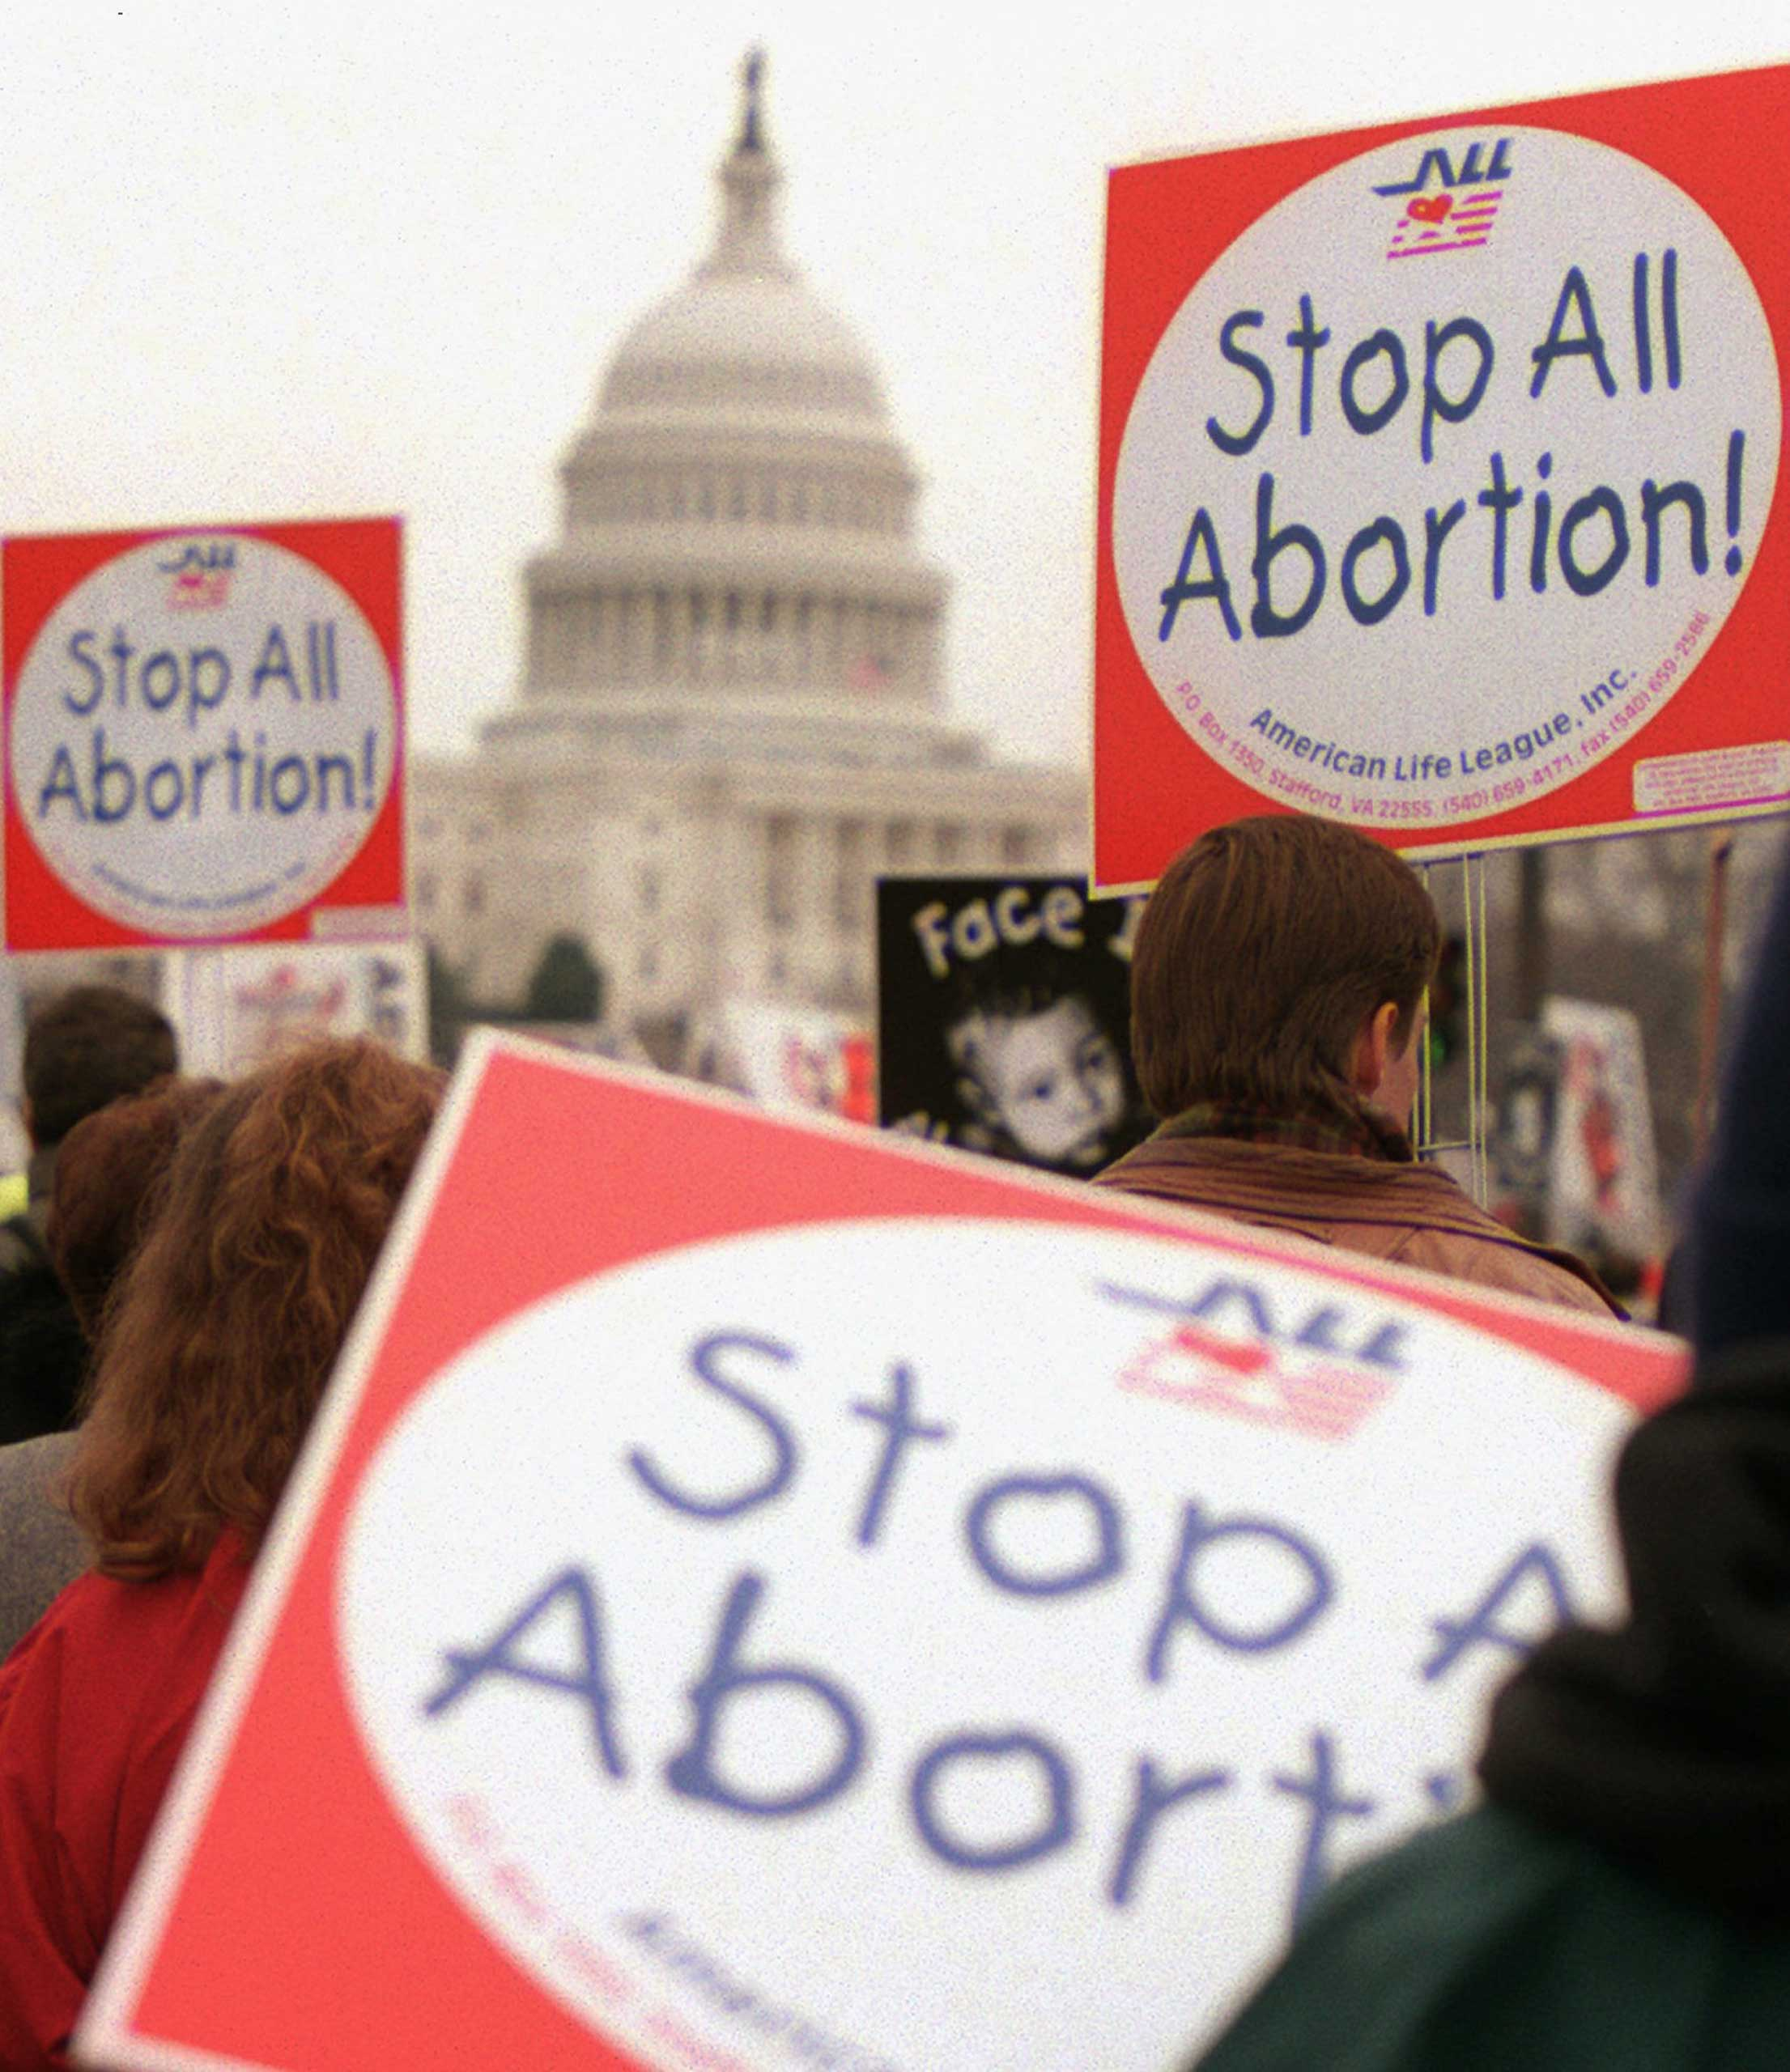 """<b>Partial-birth Abortion, Clinton, 1996</b> President Clinton drew the ire of religious and anti-abortion groups in 1996 when he vetoed the """"partial-birth abortion bill""""' which outlawed certain abortion procedures even when they would save the life of the mother. Clinton called the measure """"potentially life-saving, certainly health-saving."""" The bill was later signed into law by President George W. Bush. (Photo: Anti-abortion supporters in Washington on Jan. 22,1997.)"""